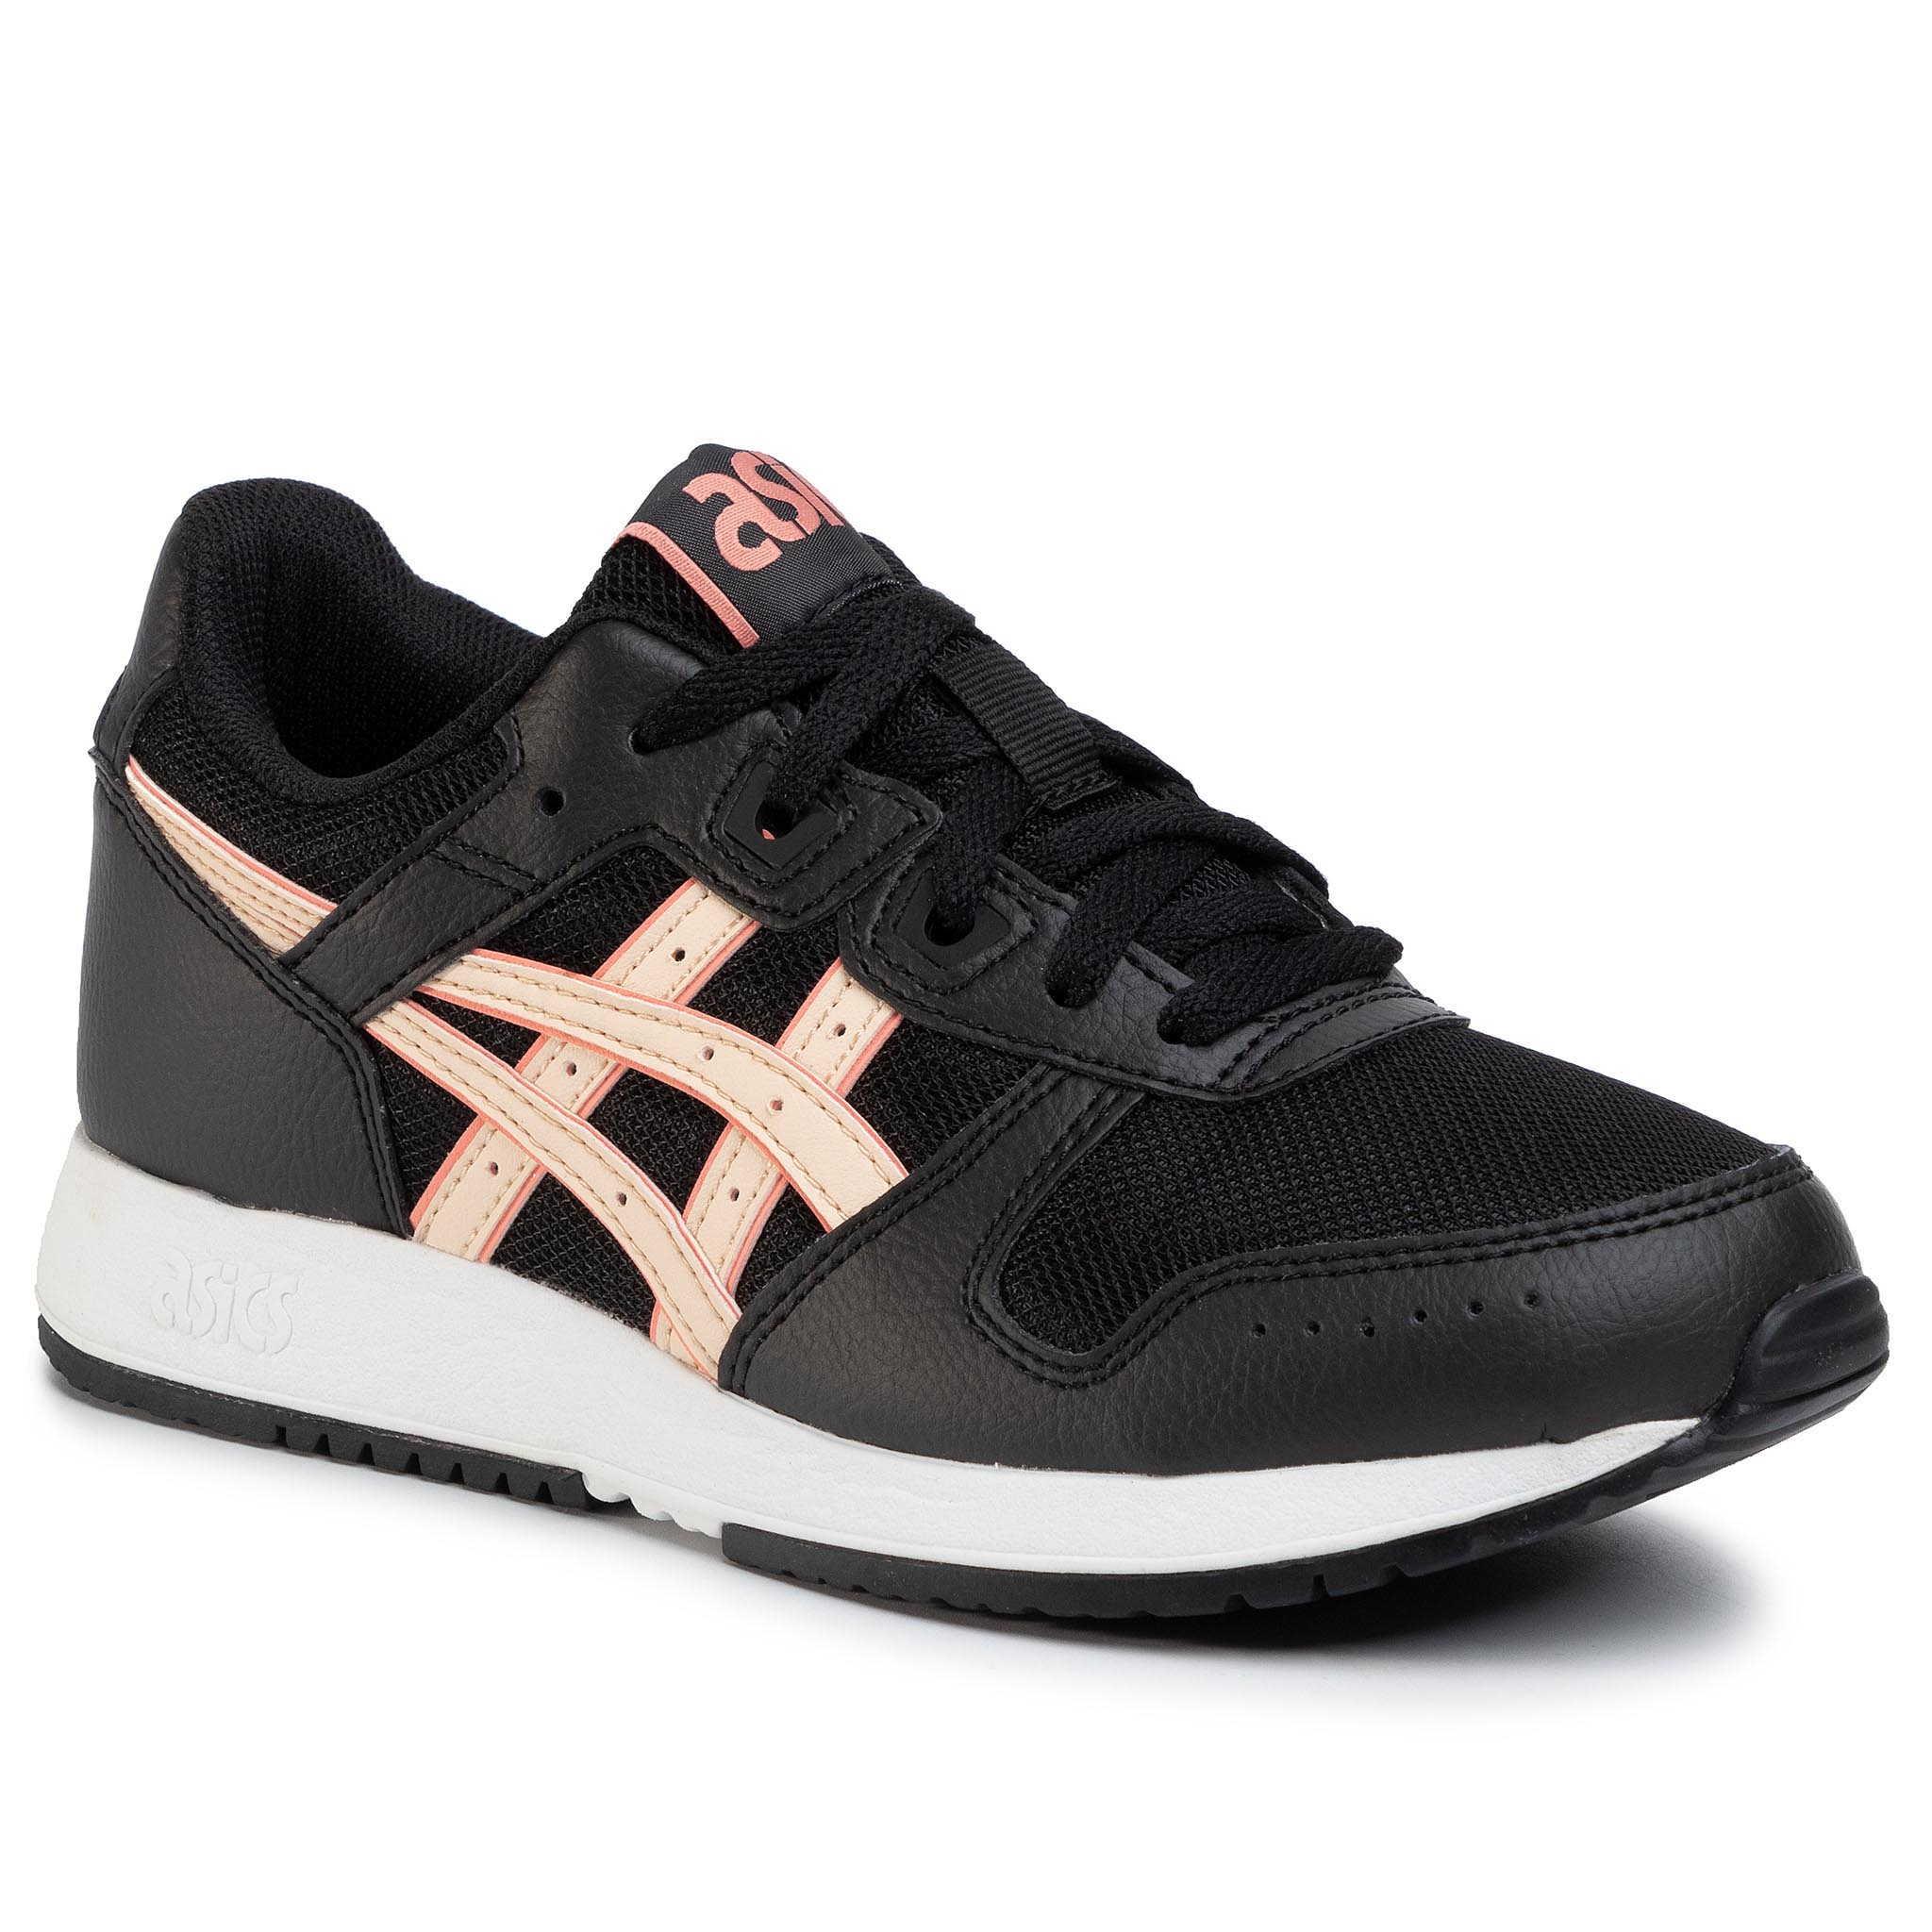 Sneakers ASICS - Lyte Classic GS 1194A063 Black/Pink Cameo 002